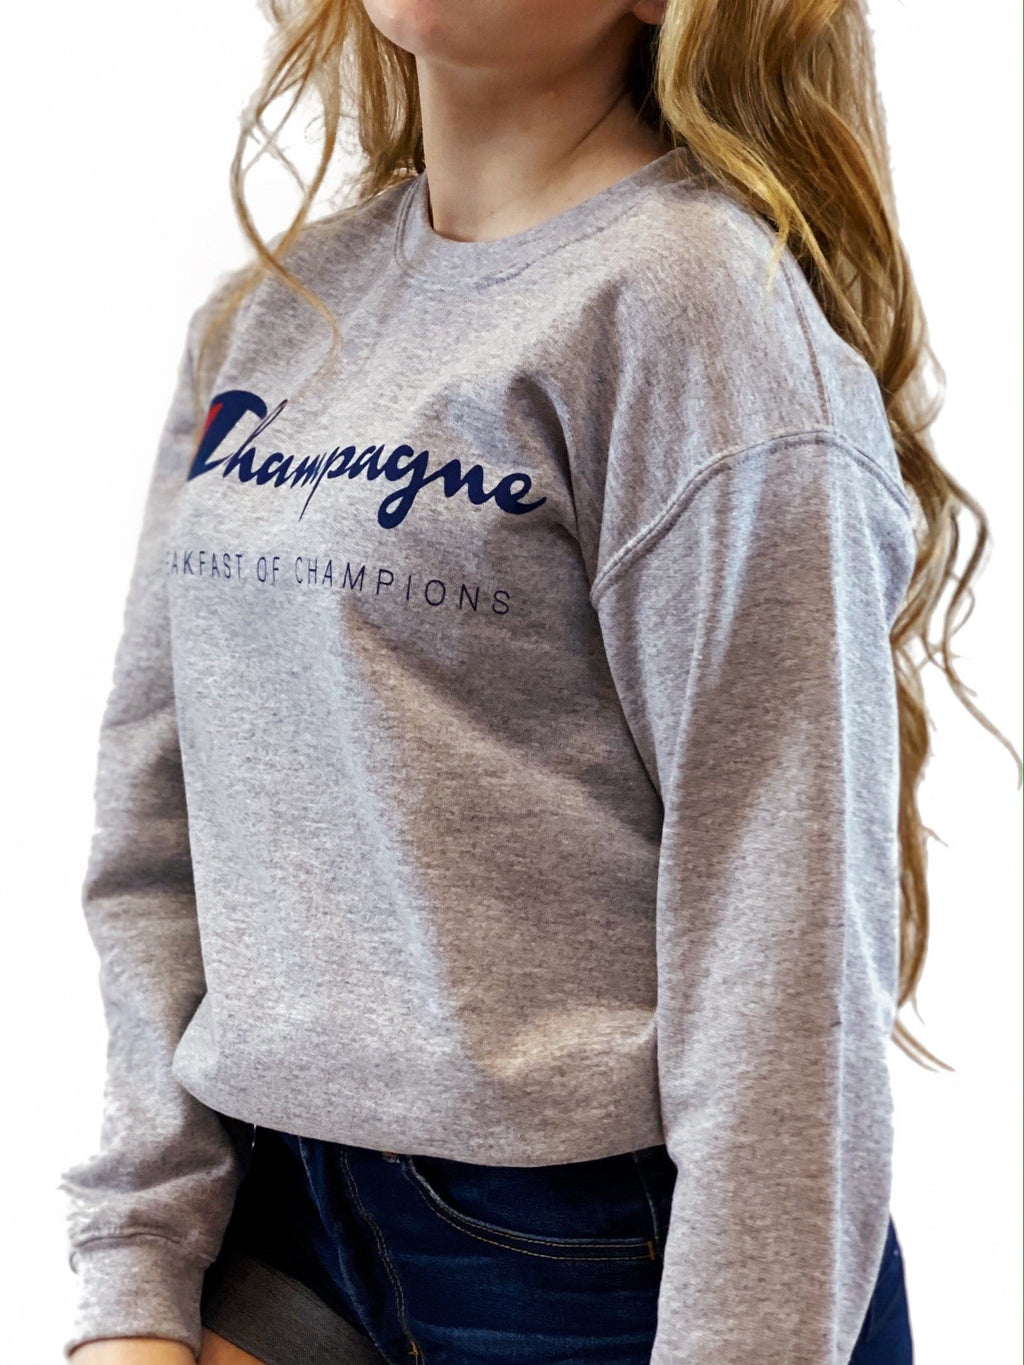 Champagne Breakfast of Champions Sweatshirt - bigcityboutique